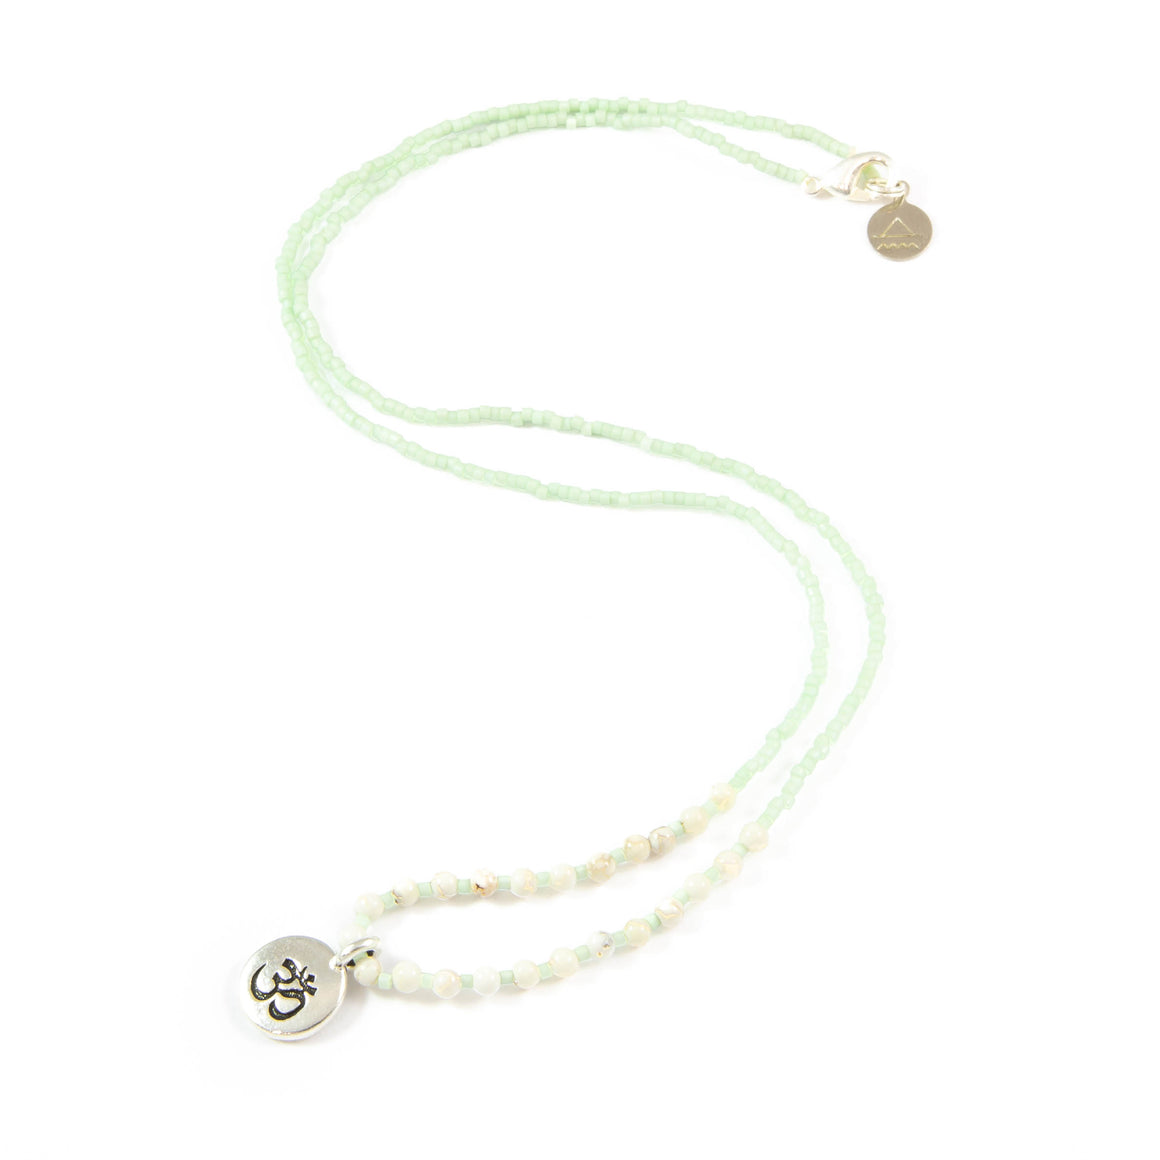 Soft Mint w/ White Turquoise Stone Om Charm Necklace in Silver